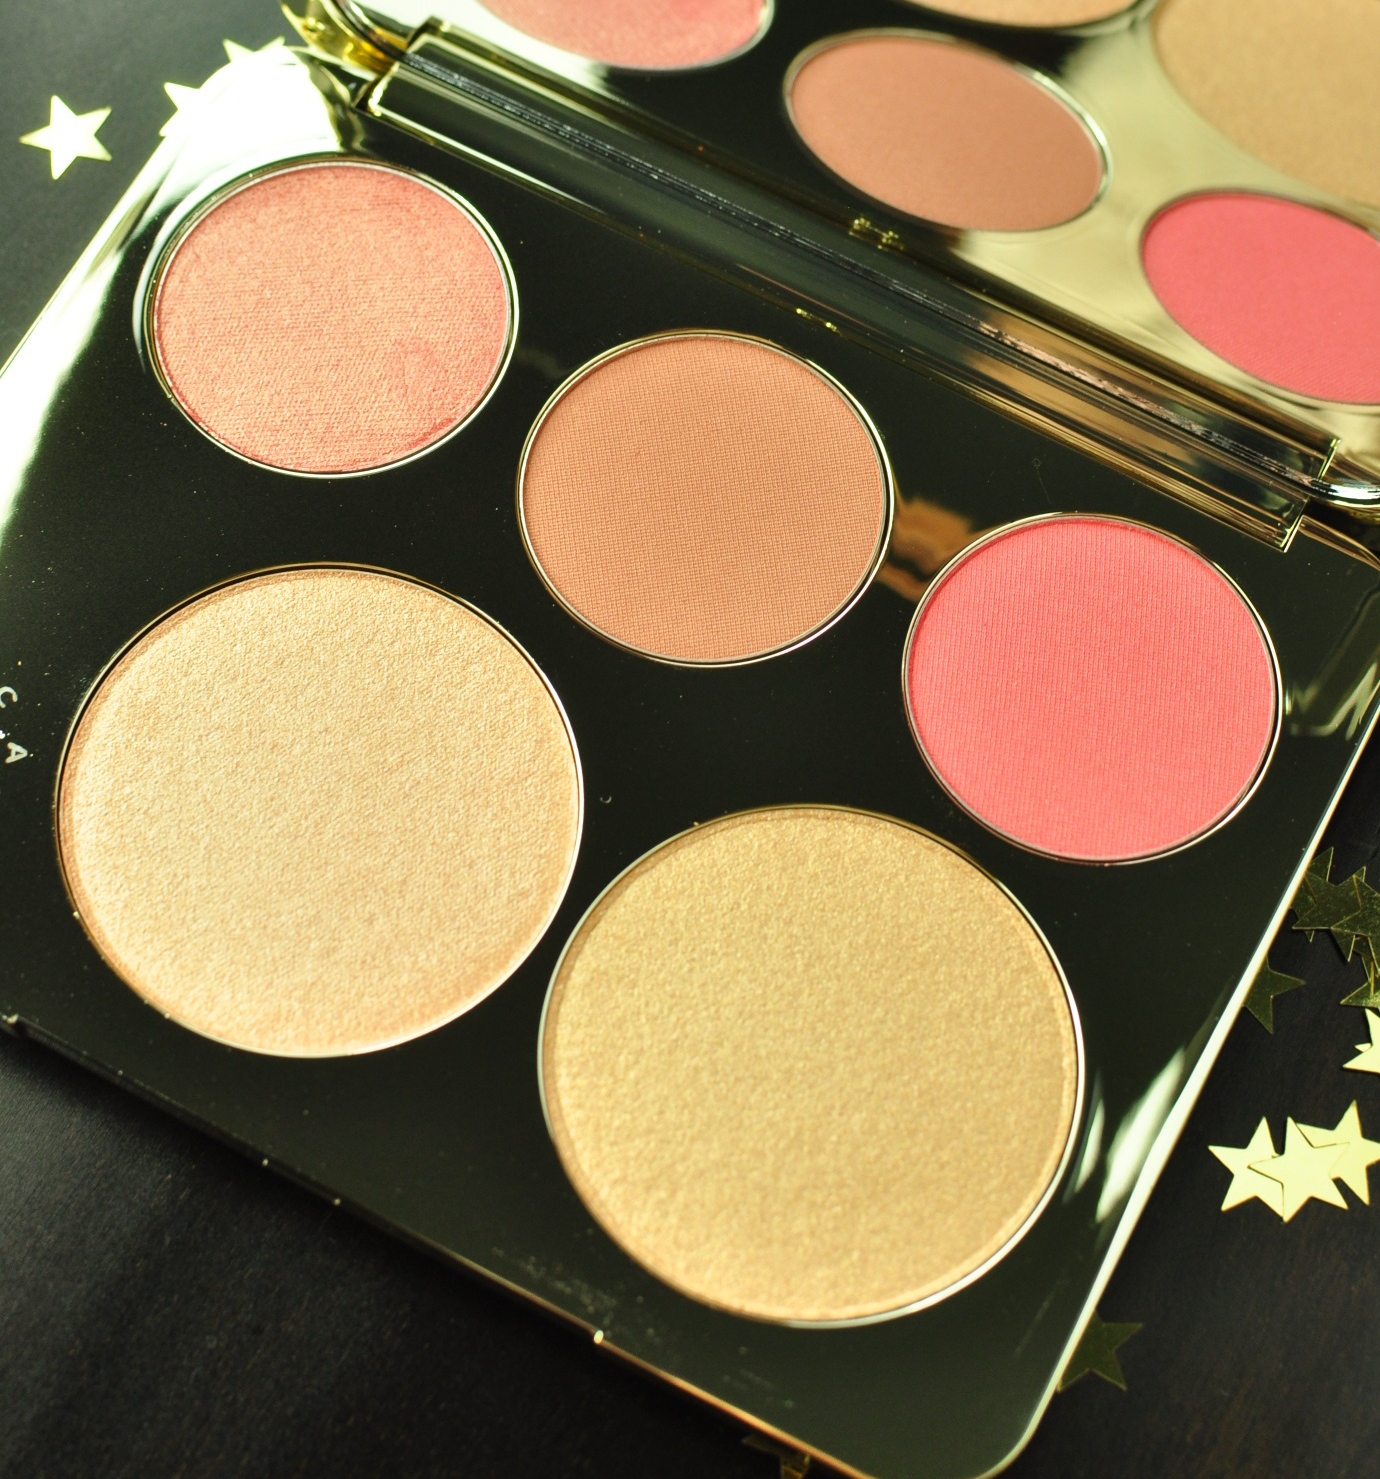 Becca X Jaclyn Hill Champagne Collection Face Palette Beauty Foundation Champagne Collection High End Makeup